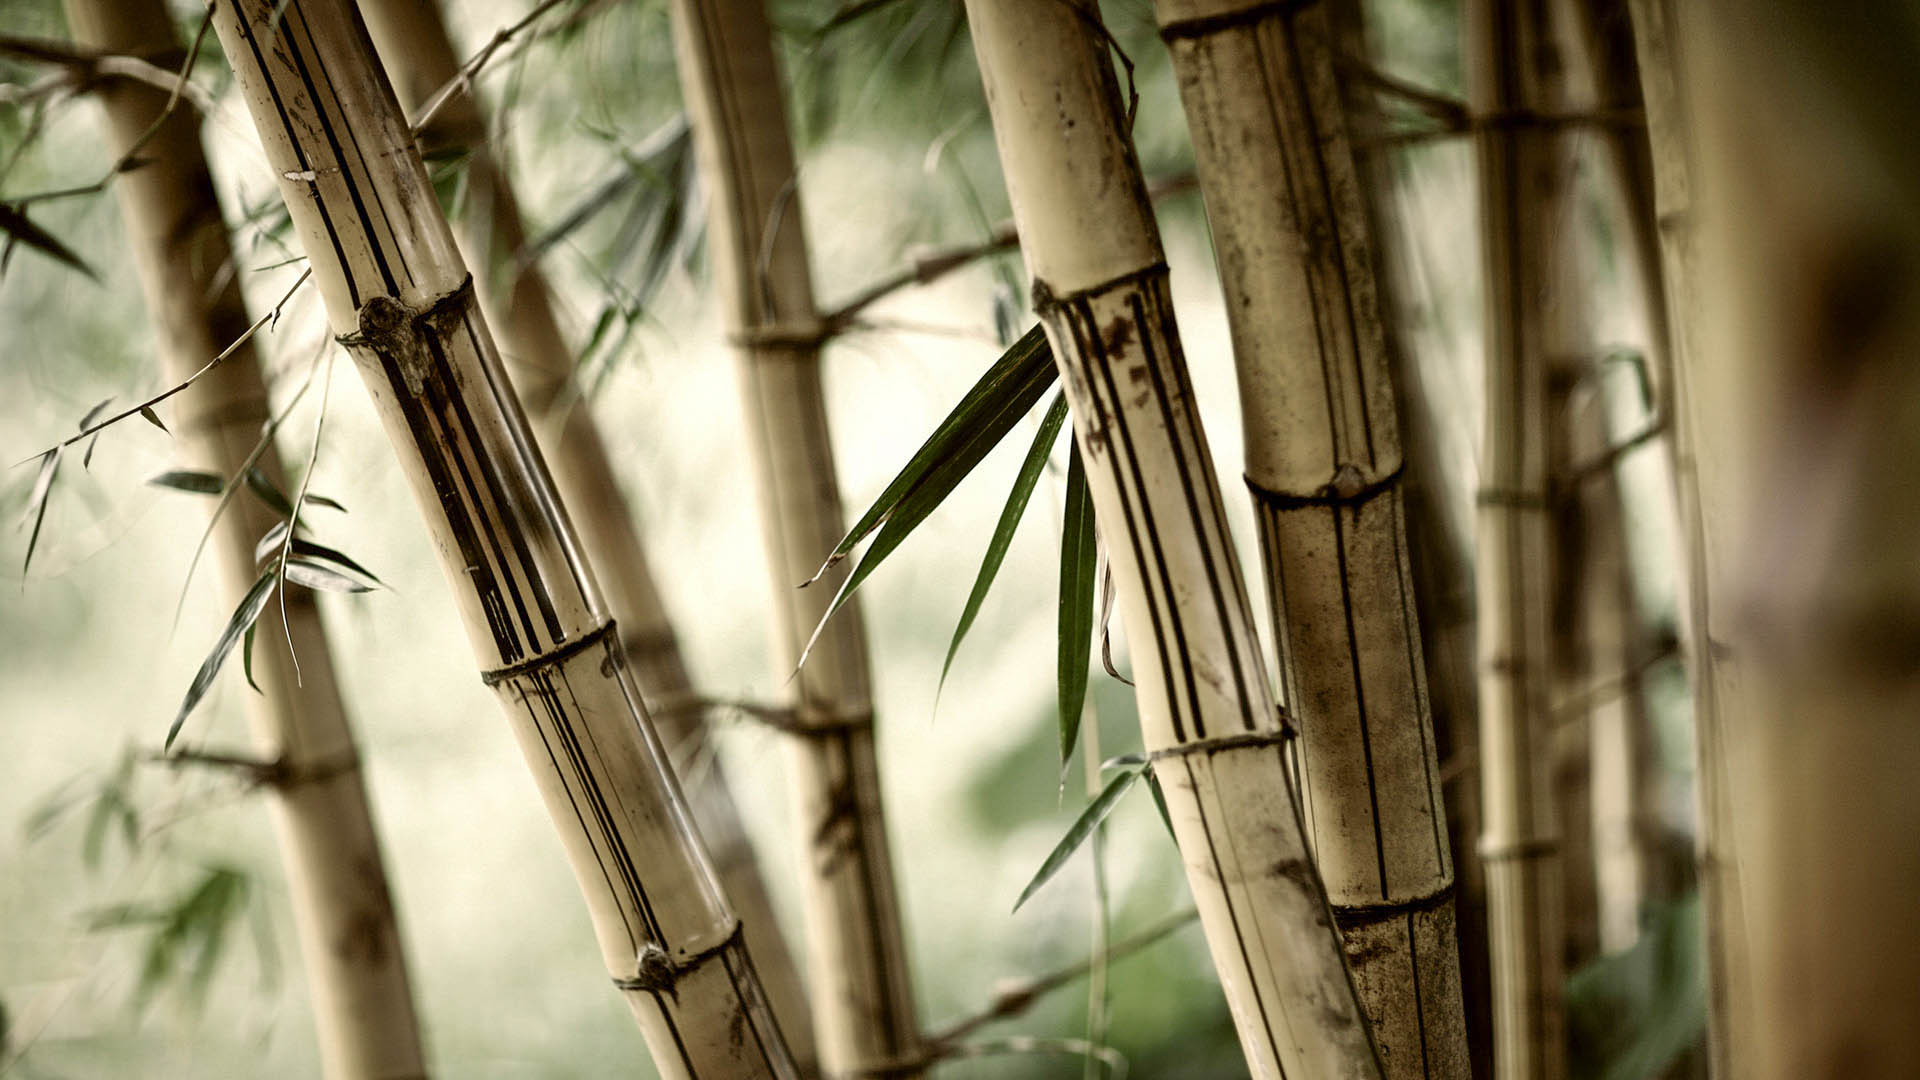 background wallpapers new: Bamboo New HD Wallpapers 2015 (High Quality)